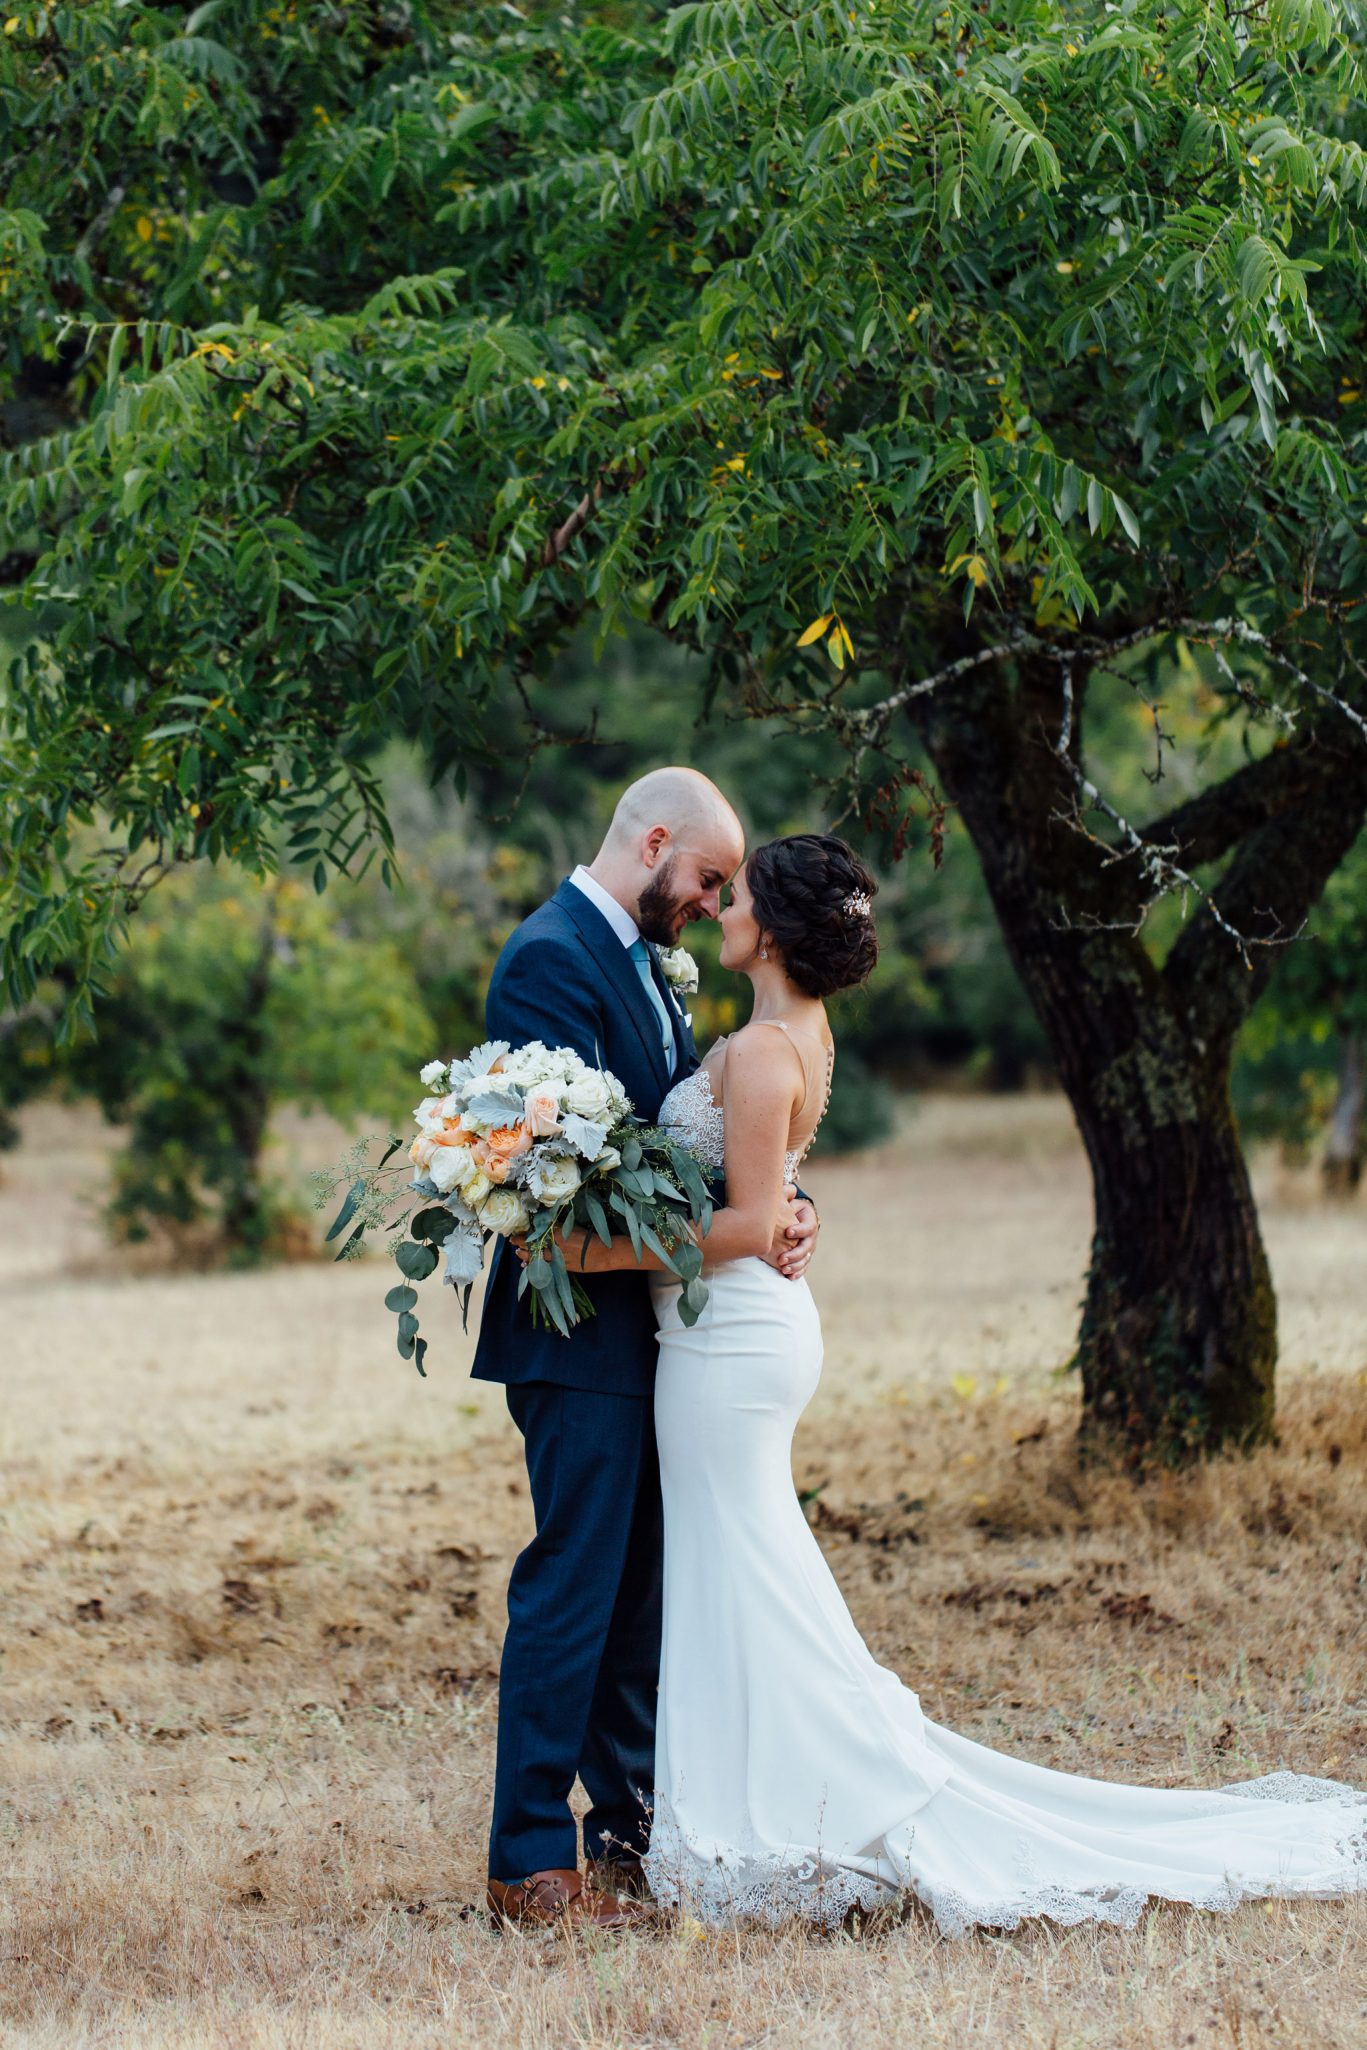 A Romantic Backyard Wedding in Wine Country, Napa Valley California